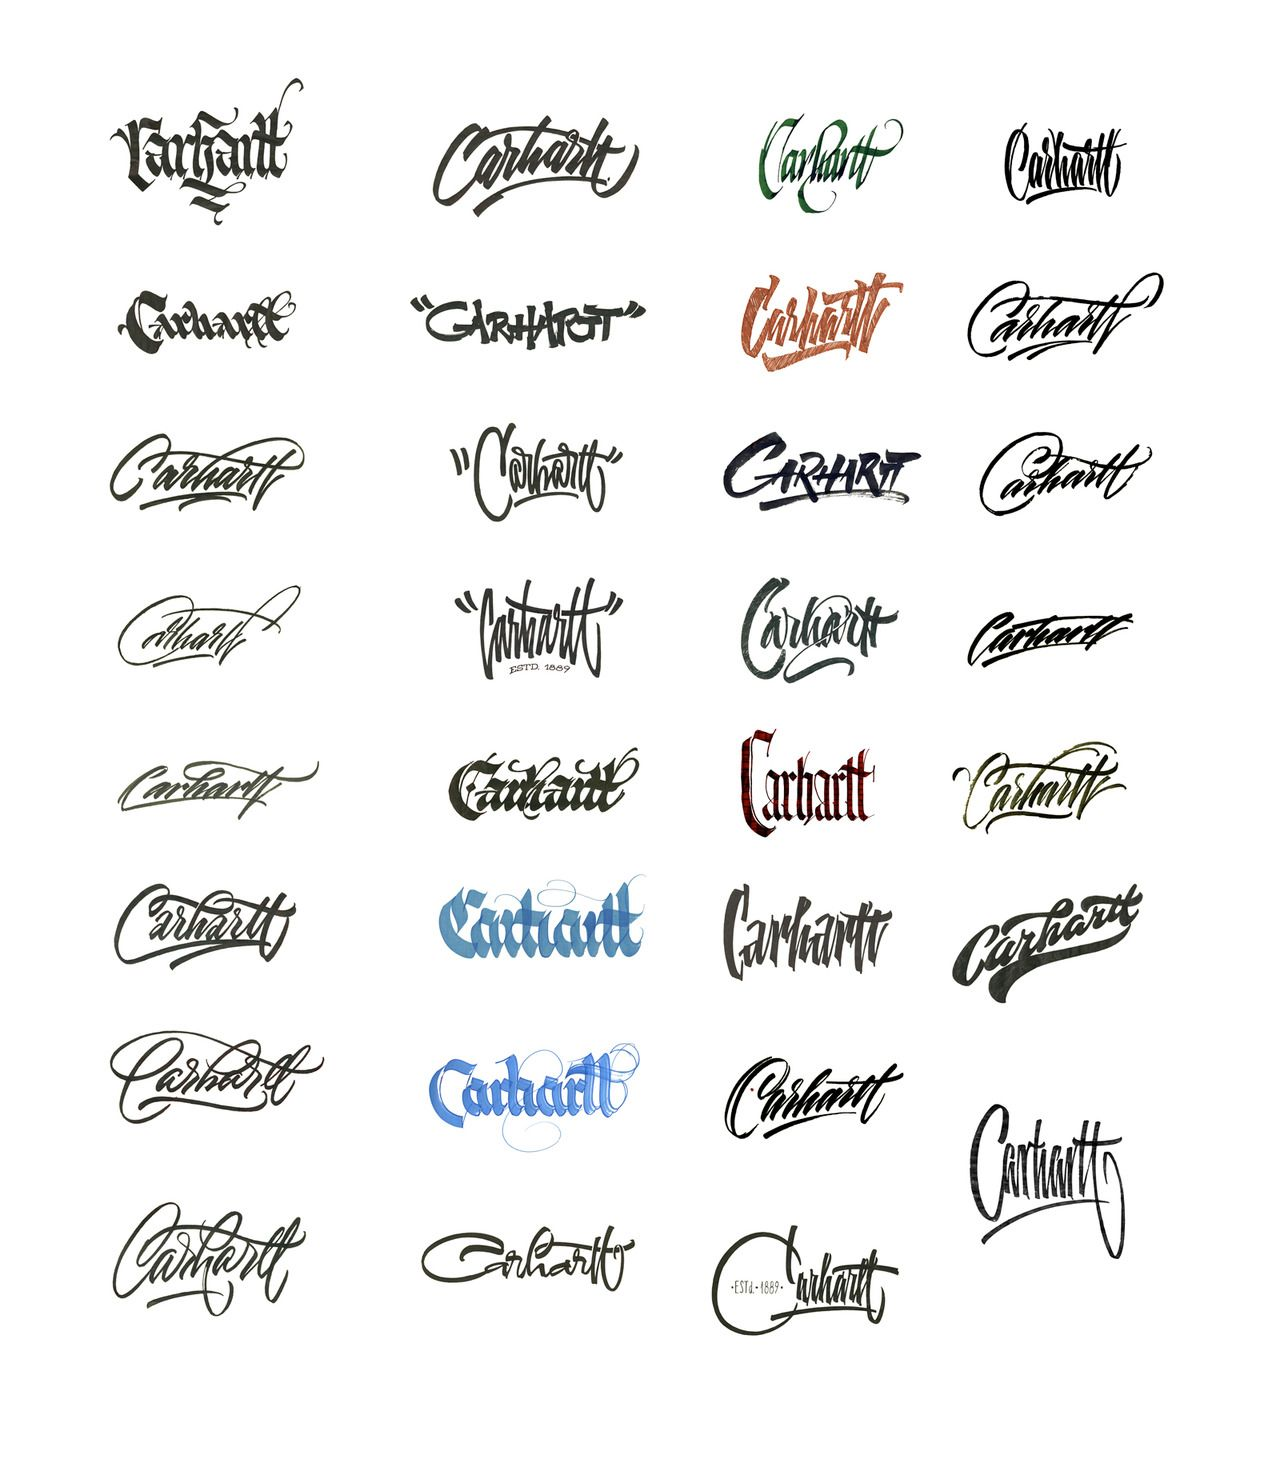 Carhartt Lettering Treatments Lettering Tattoo Lettering Fonts Name Tattoo Designs Check out our name tattoo font selection for the very best in unique or custom, handmade pieces from our shops. pinterest